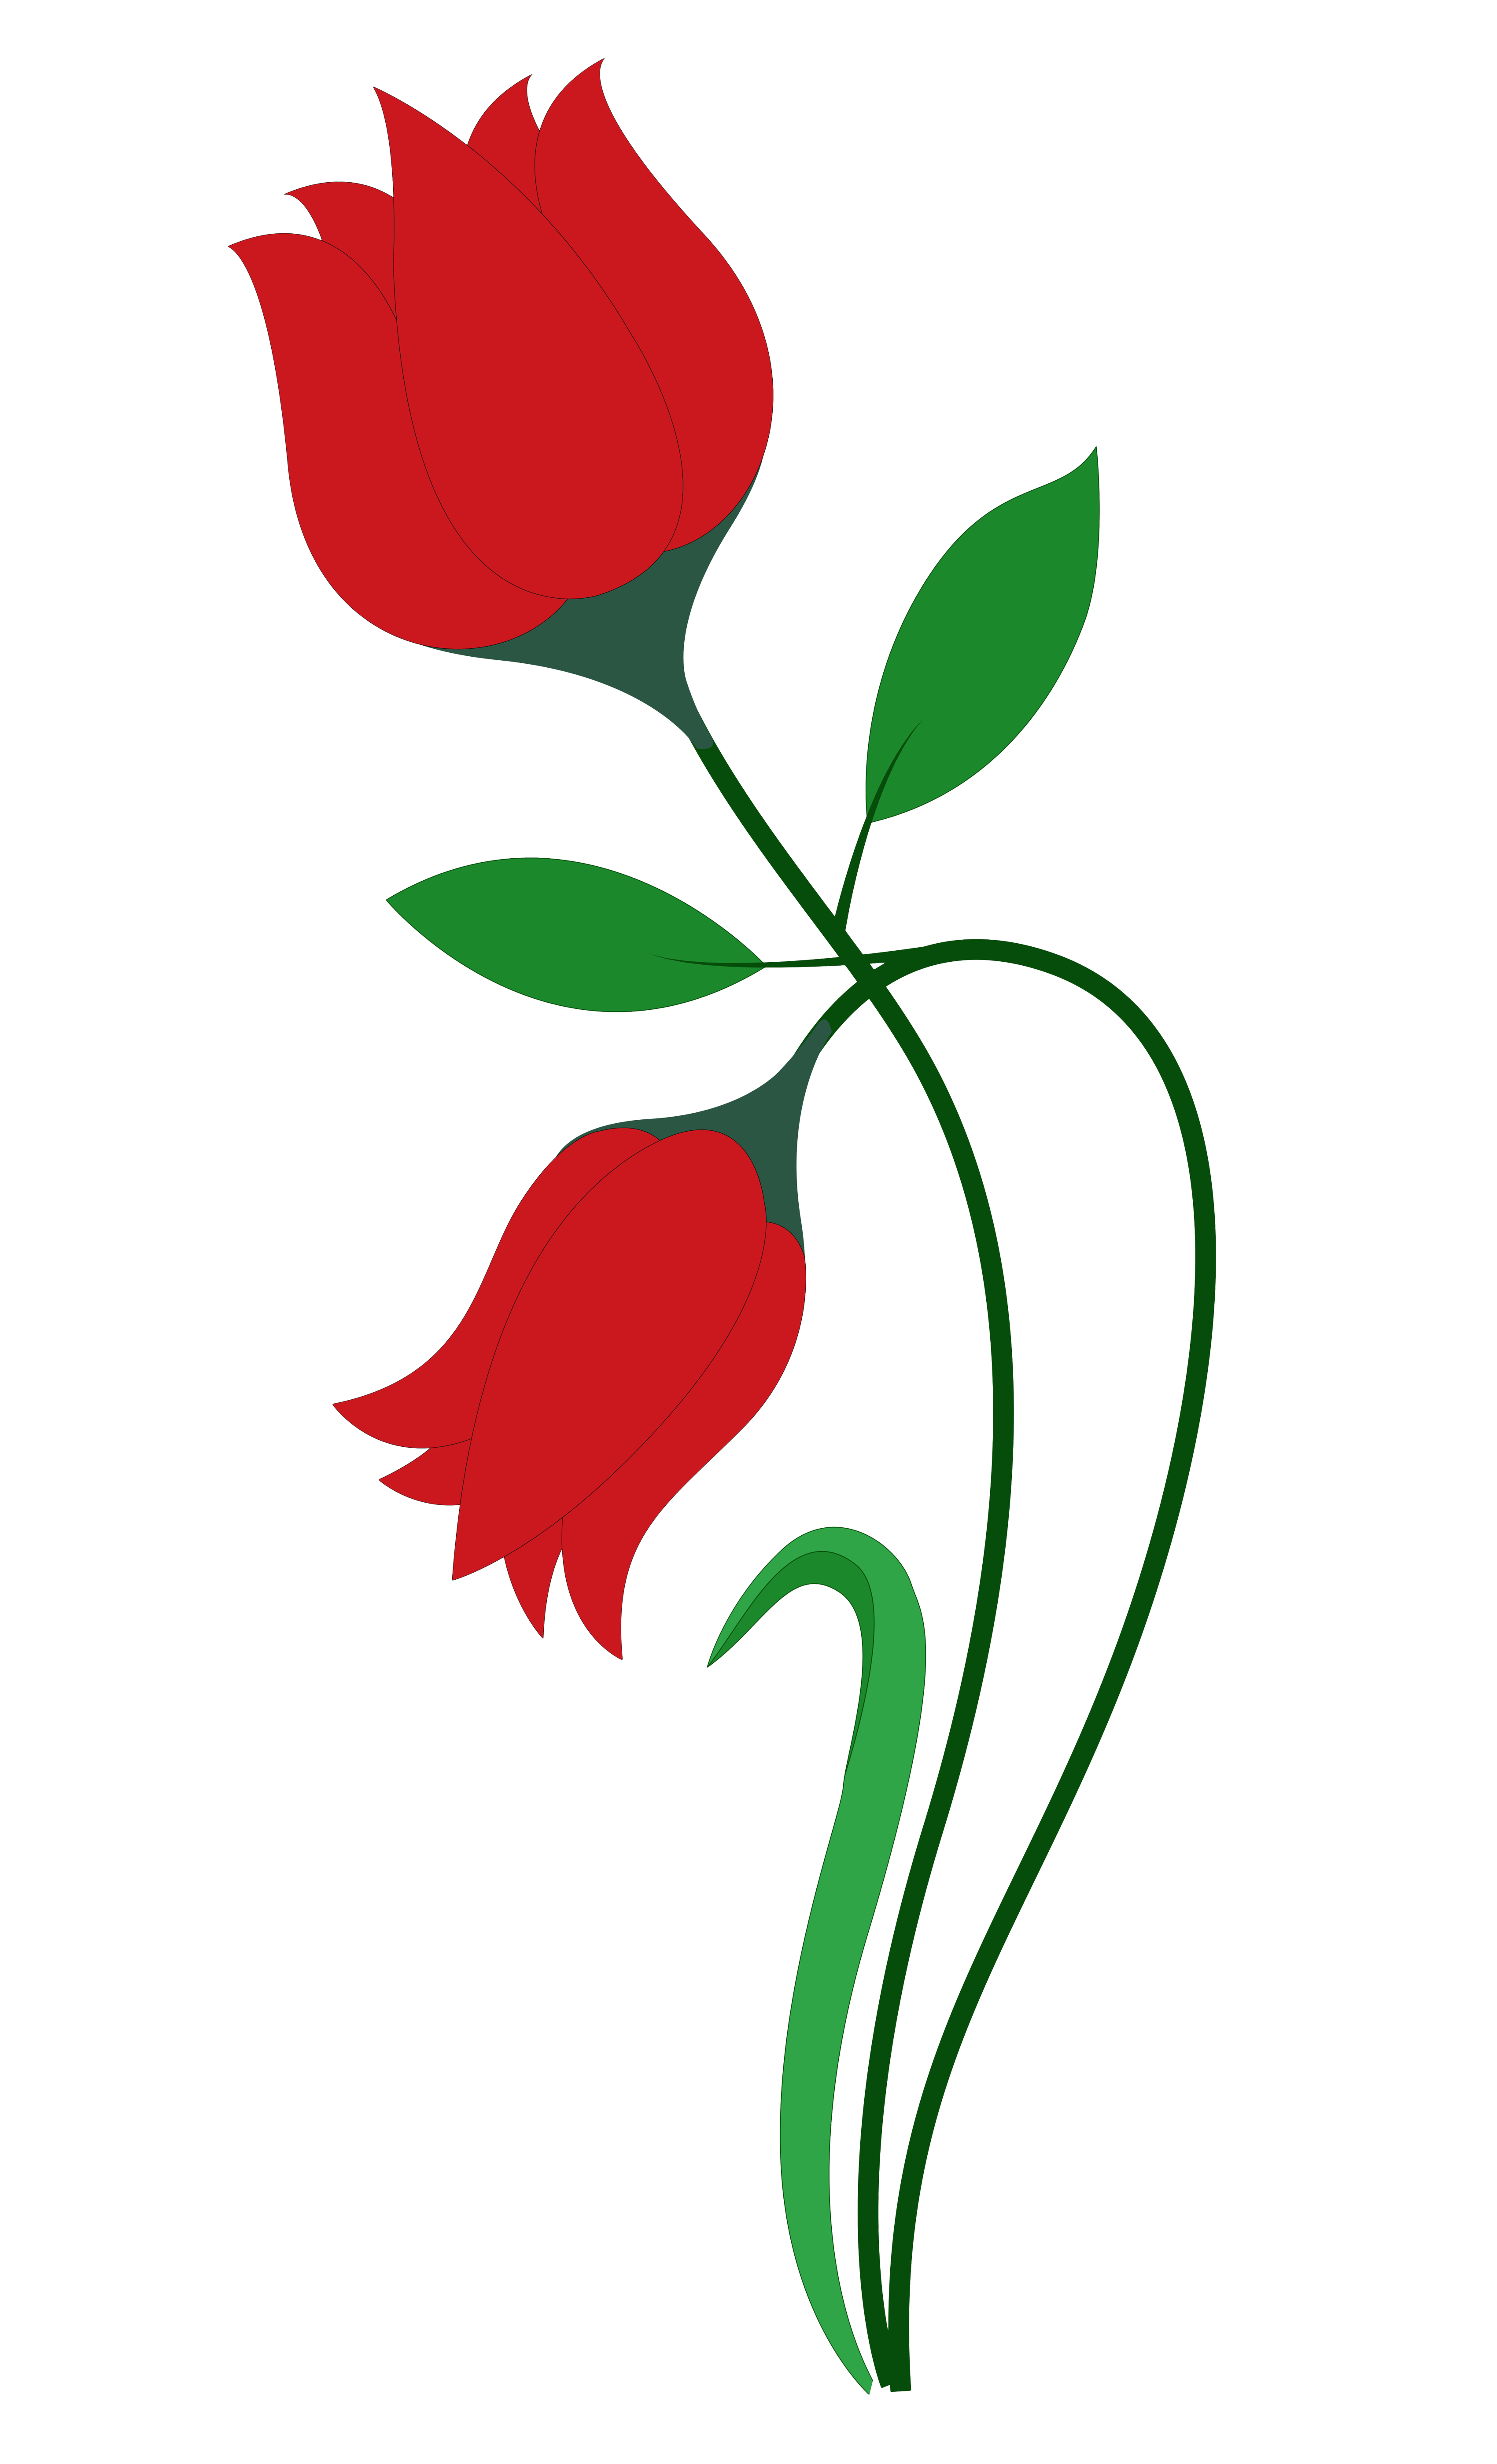 clipart freeuse library Blossom clipart rose. Flower at getdrawings com.